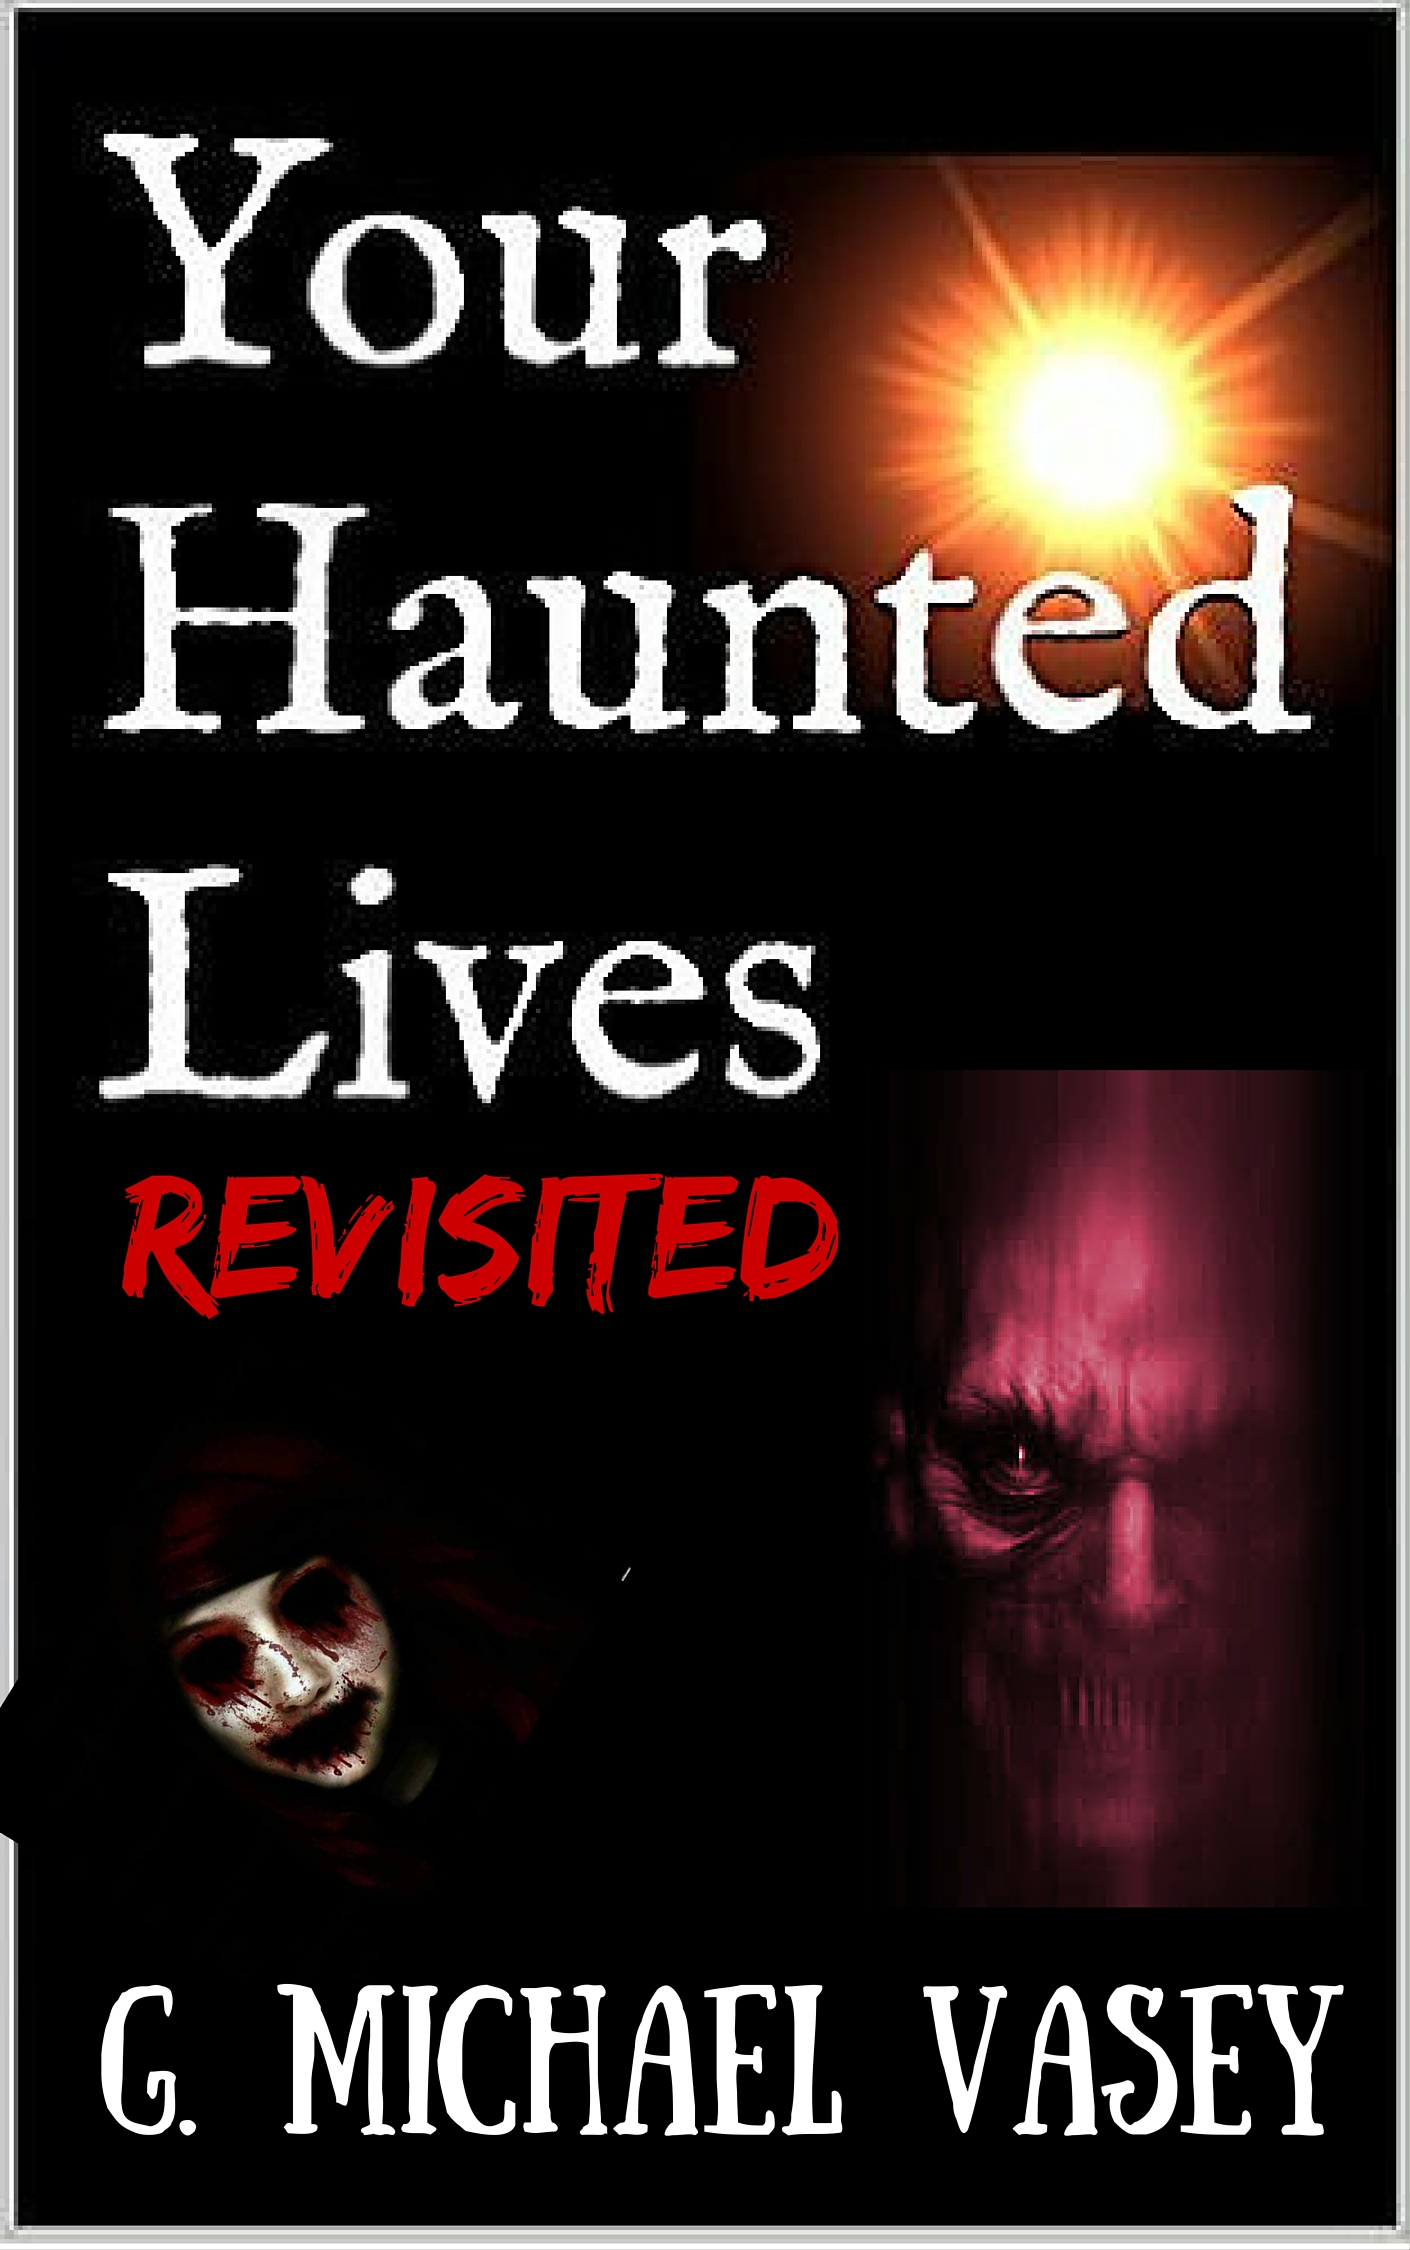 My Haunted Lives Revisited